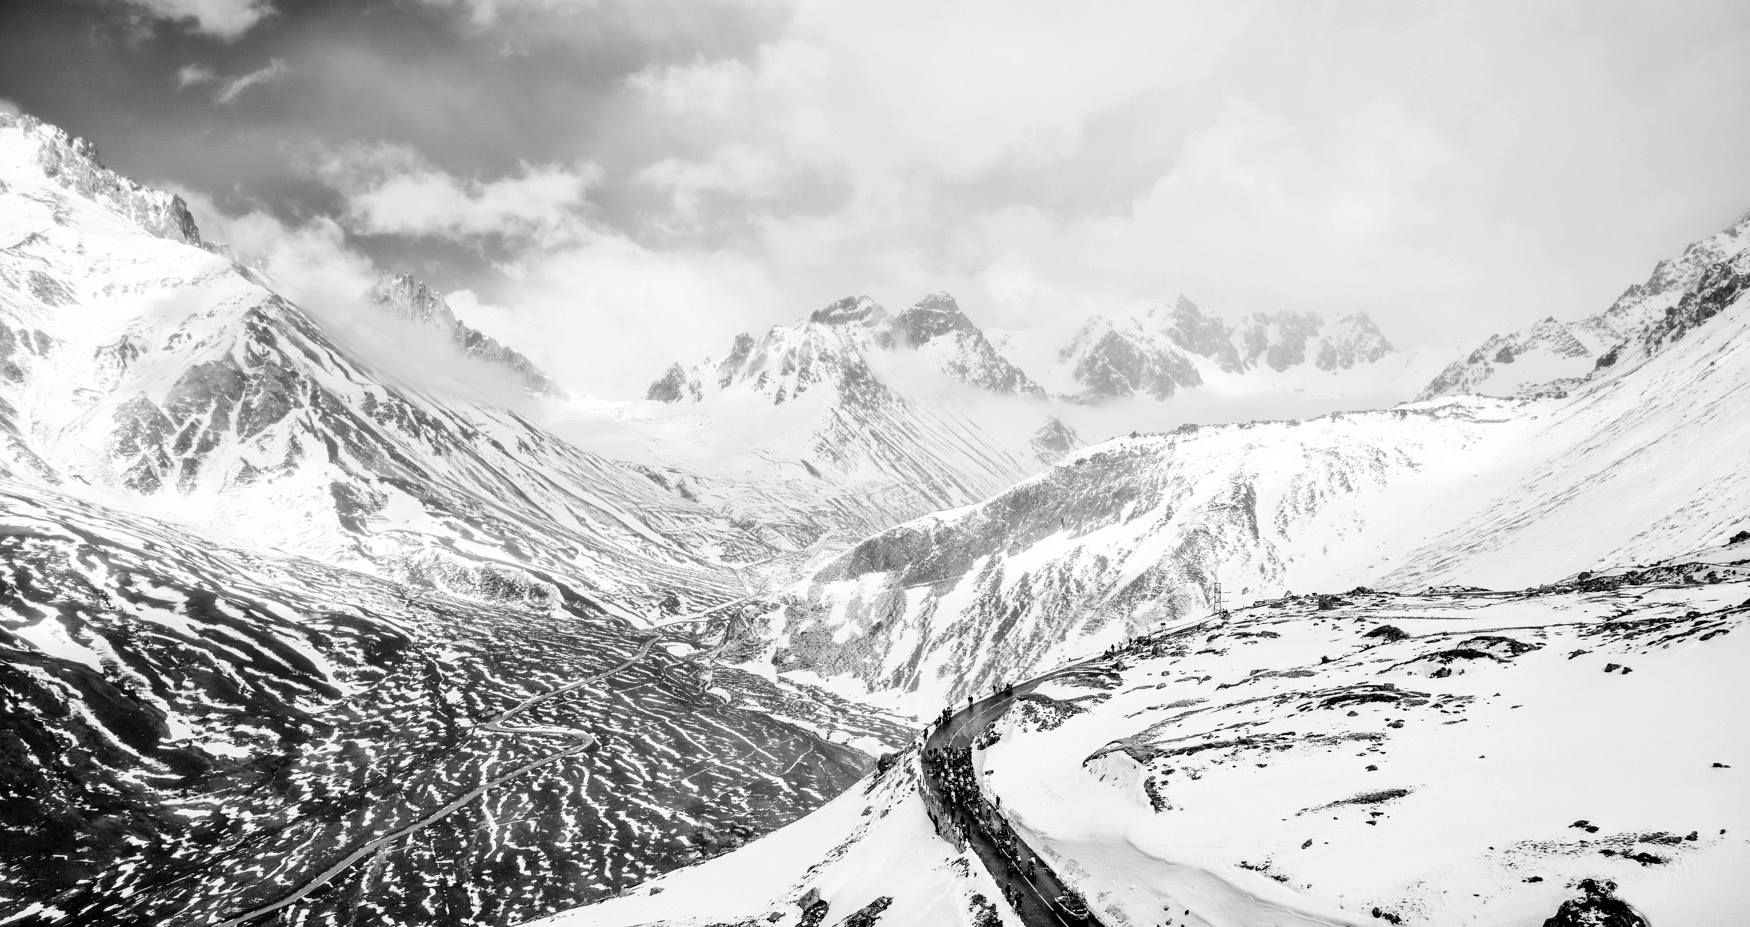 Giro d'Italia 2013 iconic image 5/8 - In a day that will remain forever in history, Giro d'Italia conquers a legendary climb of cycling: the Col du Galibier!  Via Giro D'Italia.  #socialpeloton #giro #bicycling.